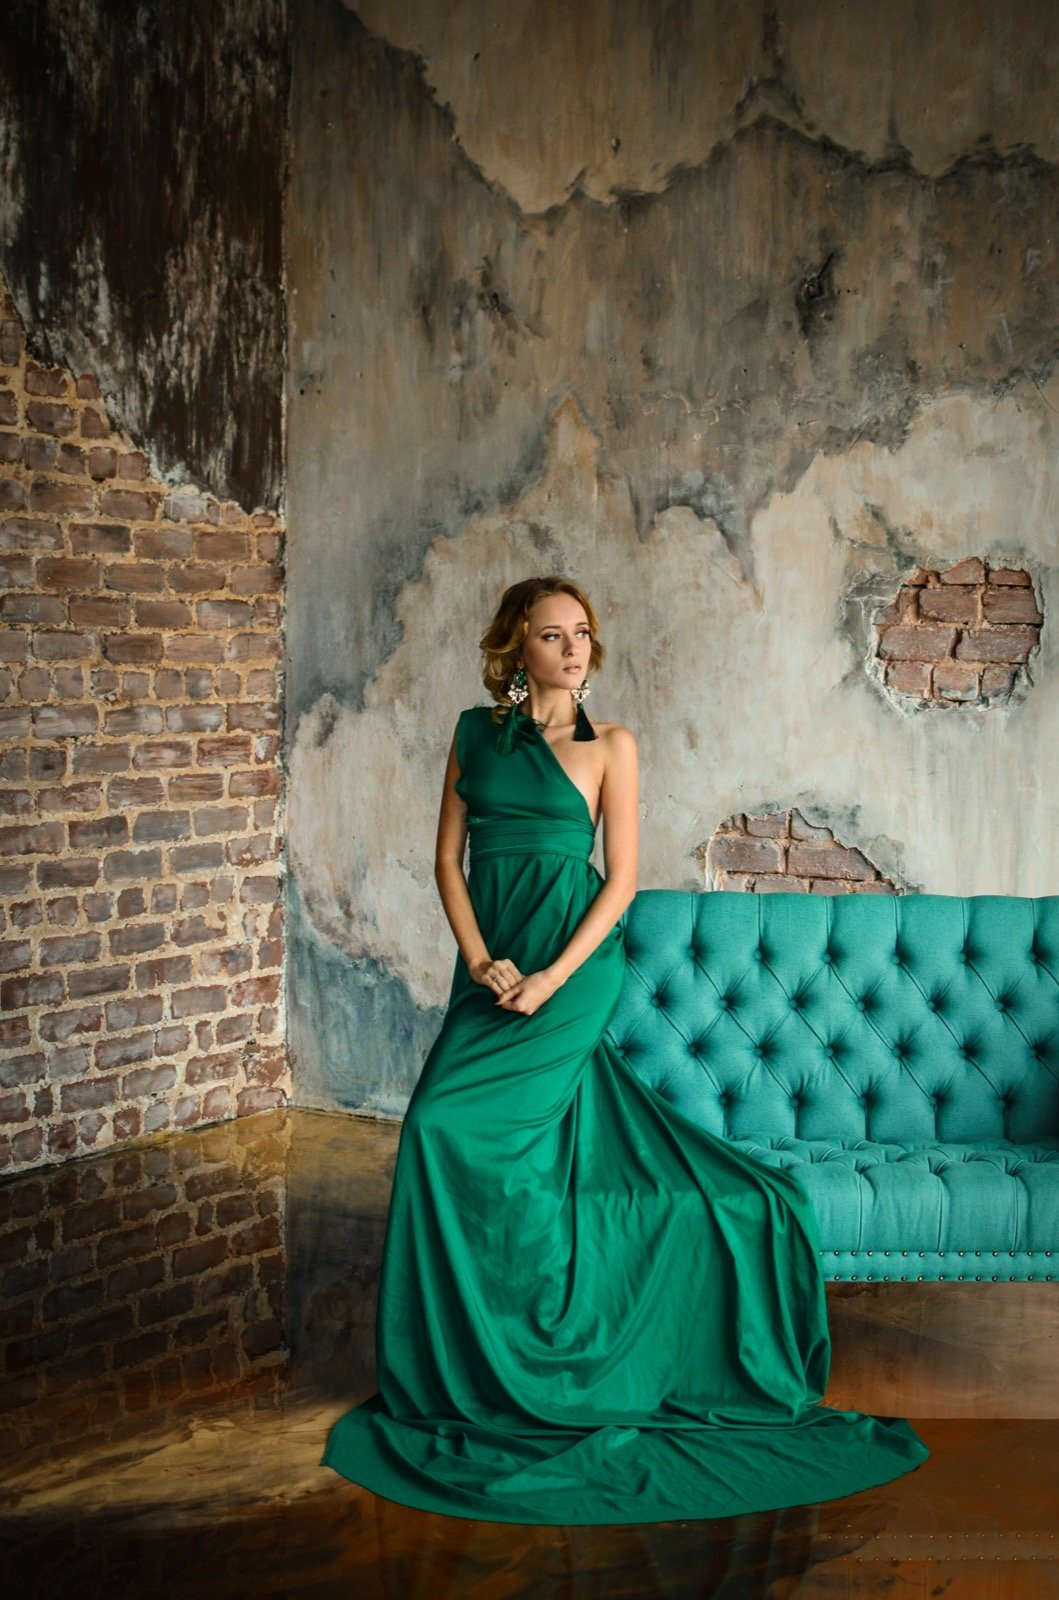 Fashion shot of woman in green dress posing in vintage interior setting